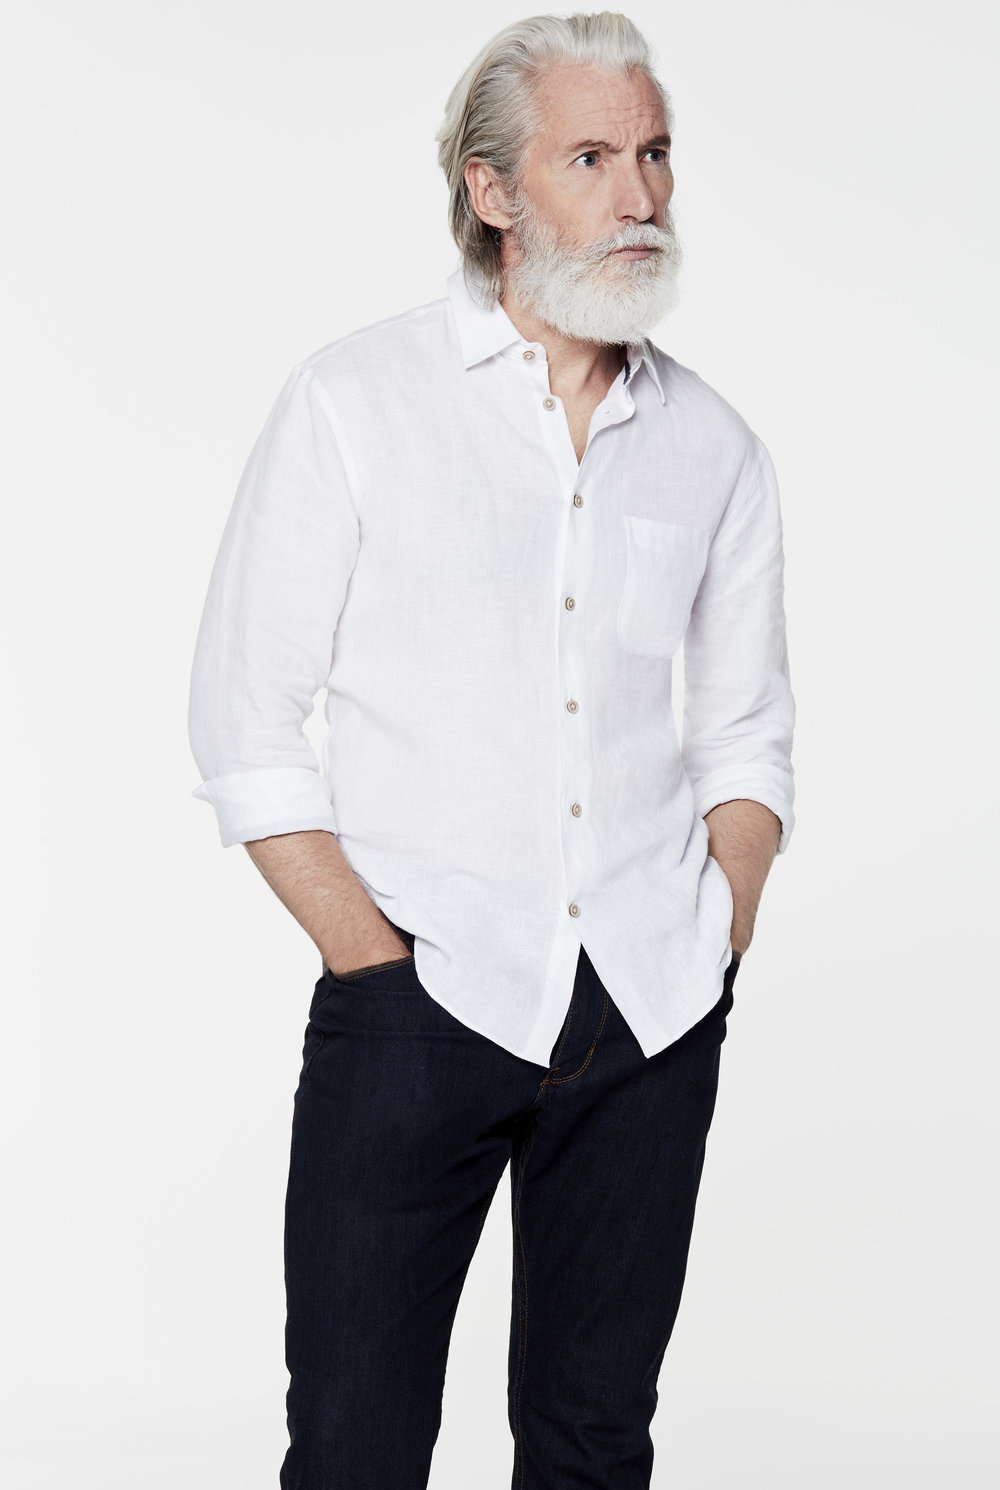 M&S High Summer Collection 17 (8).jpg